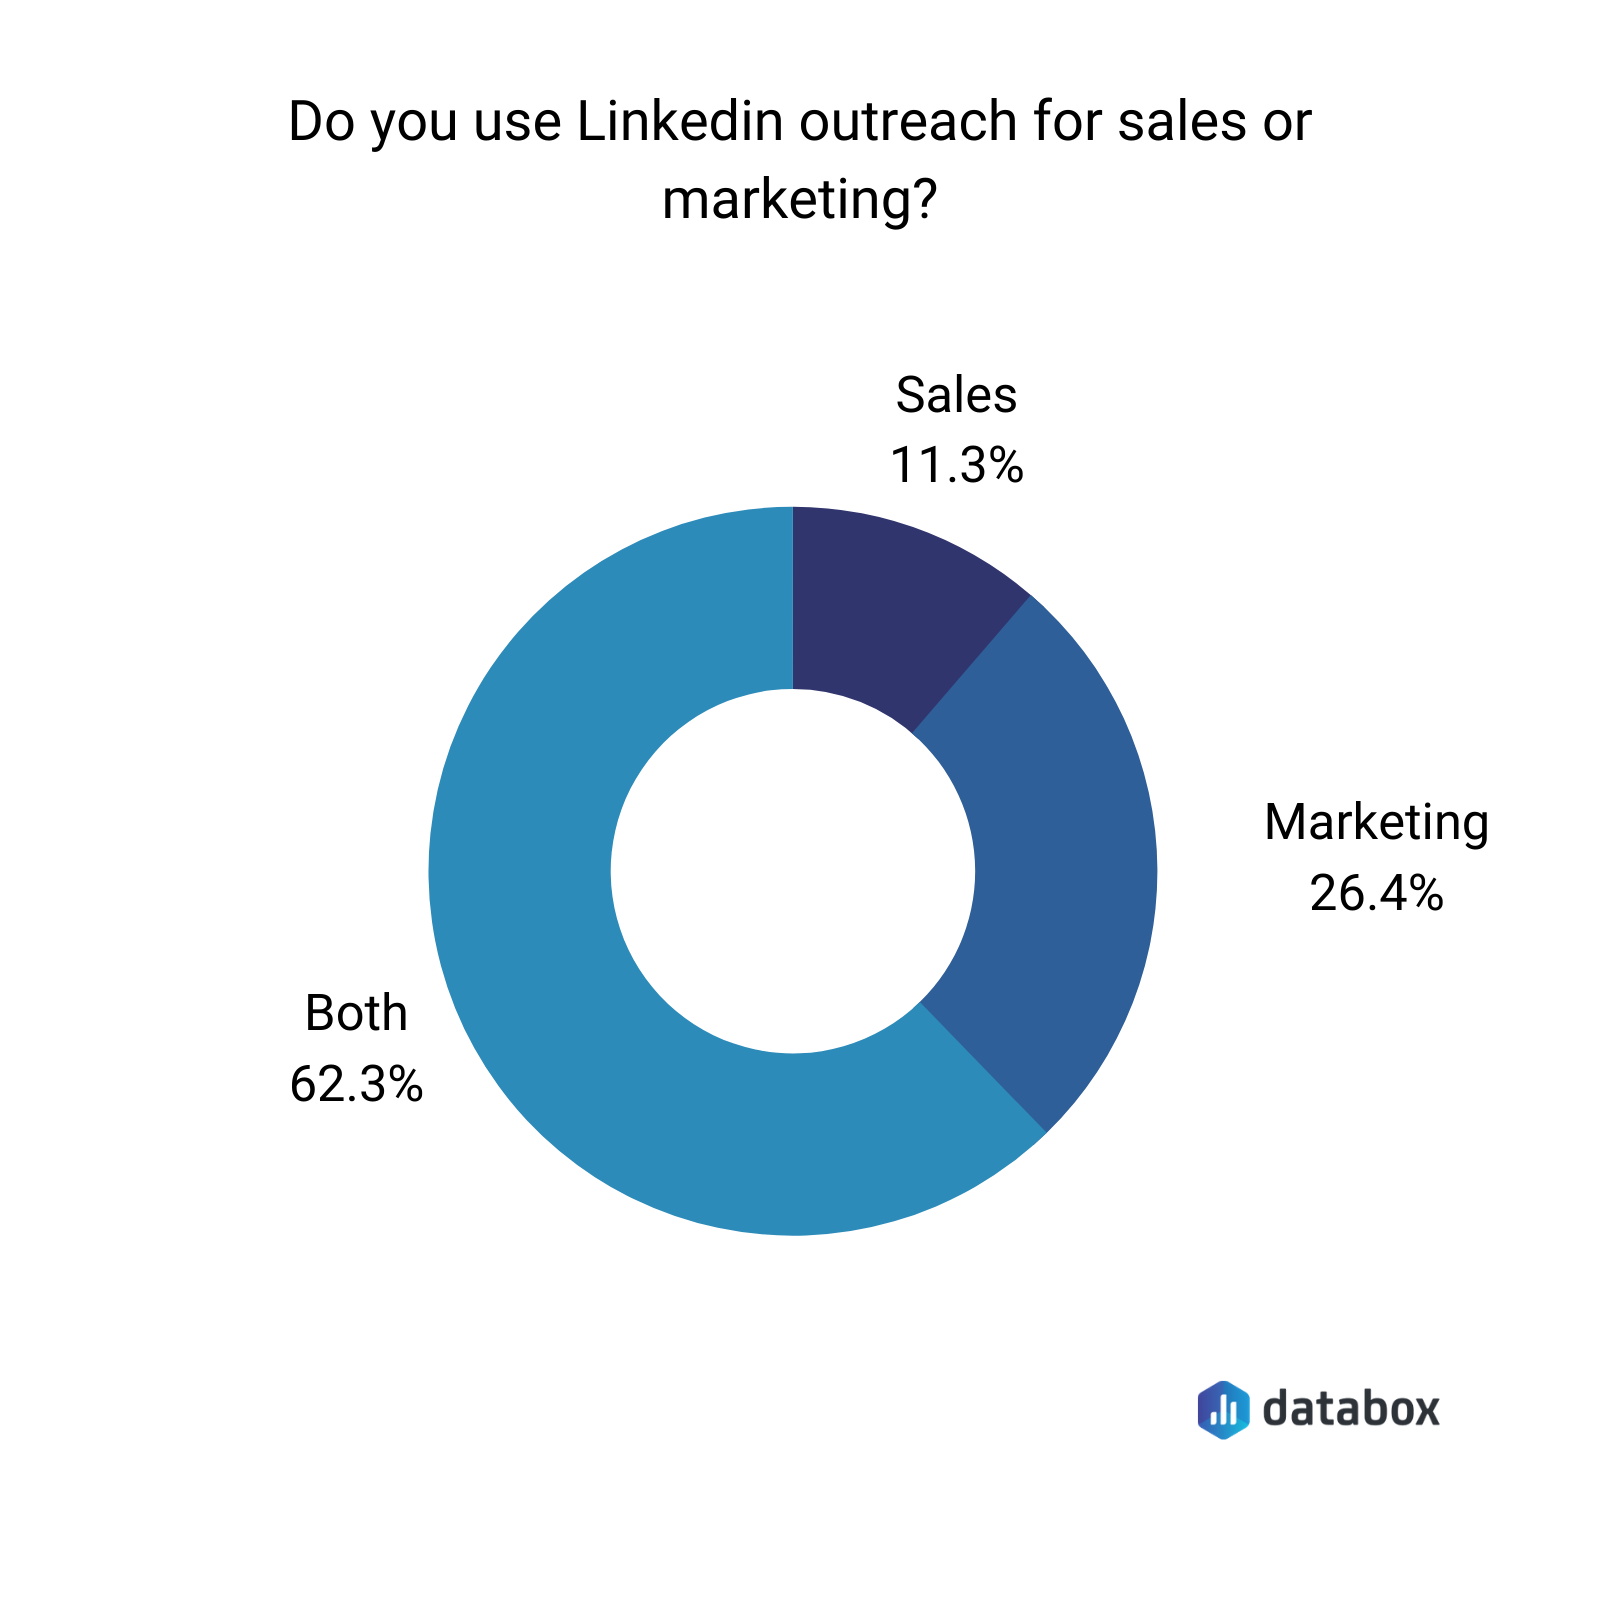 do you use LinkedIn outreach for sales or marketing